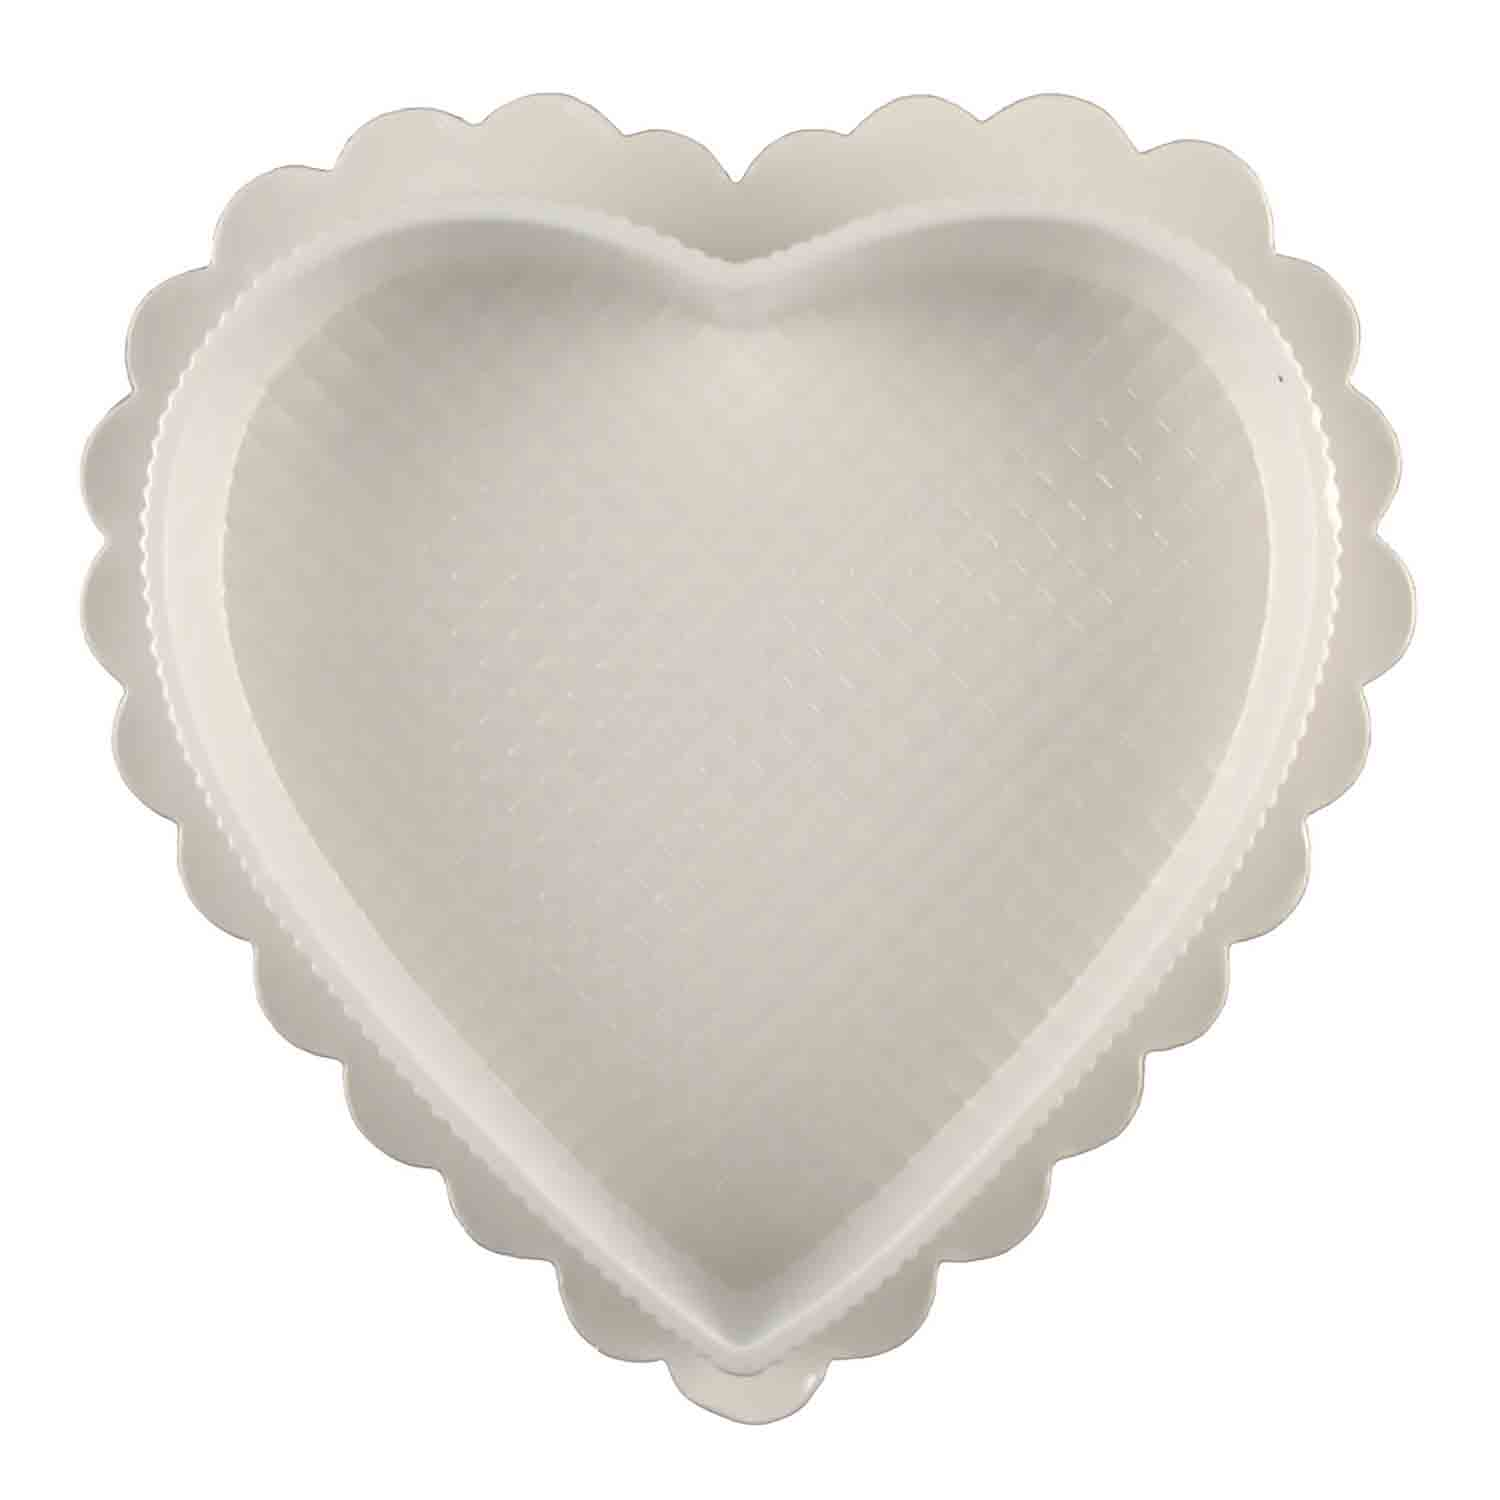 1/2 lb. White Heart Candy Box with Clear Lid